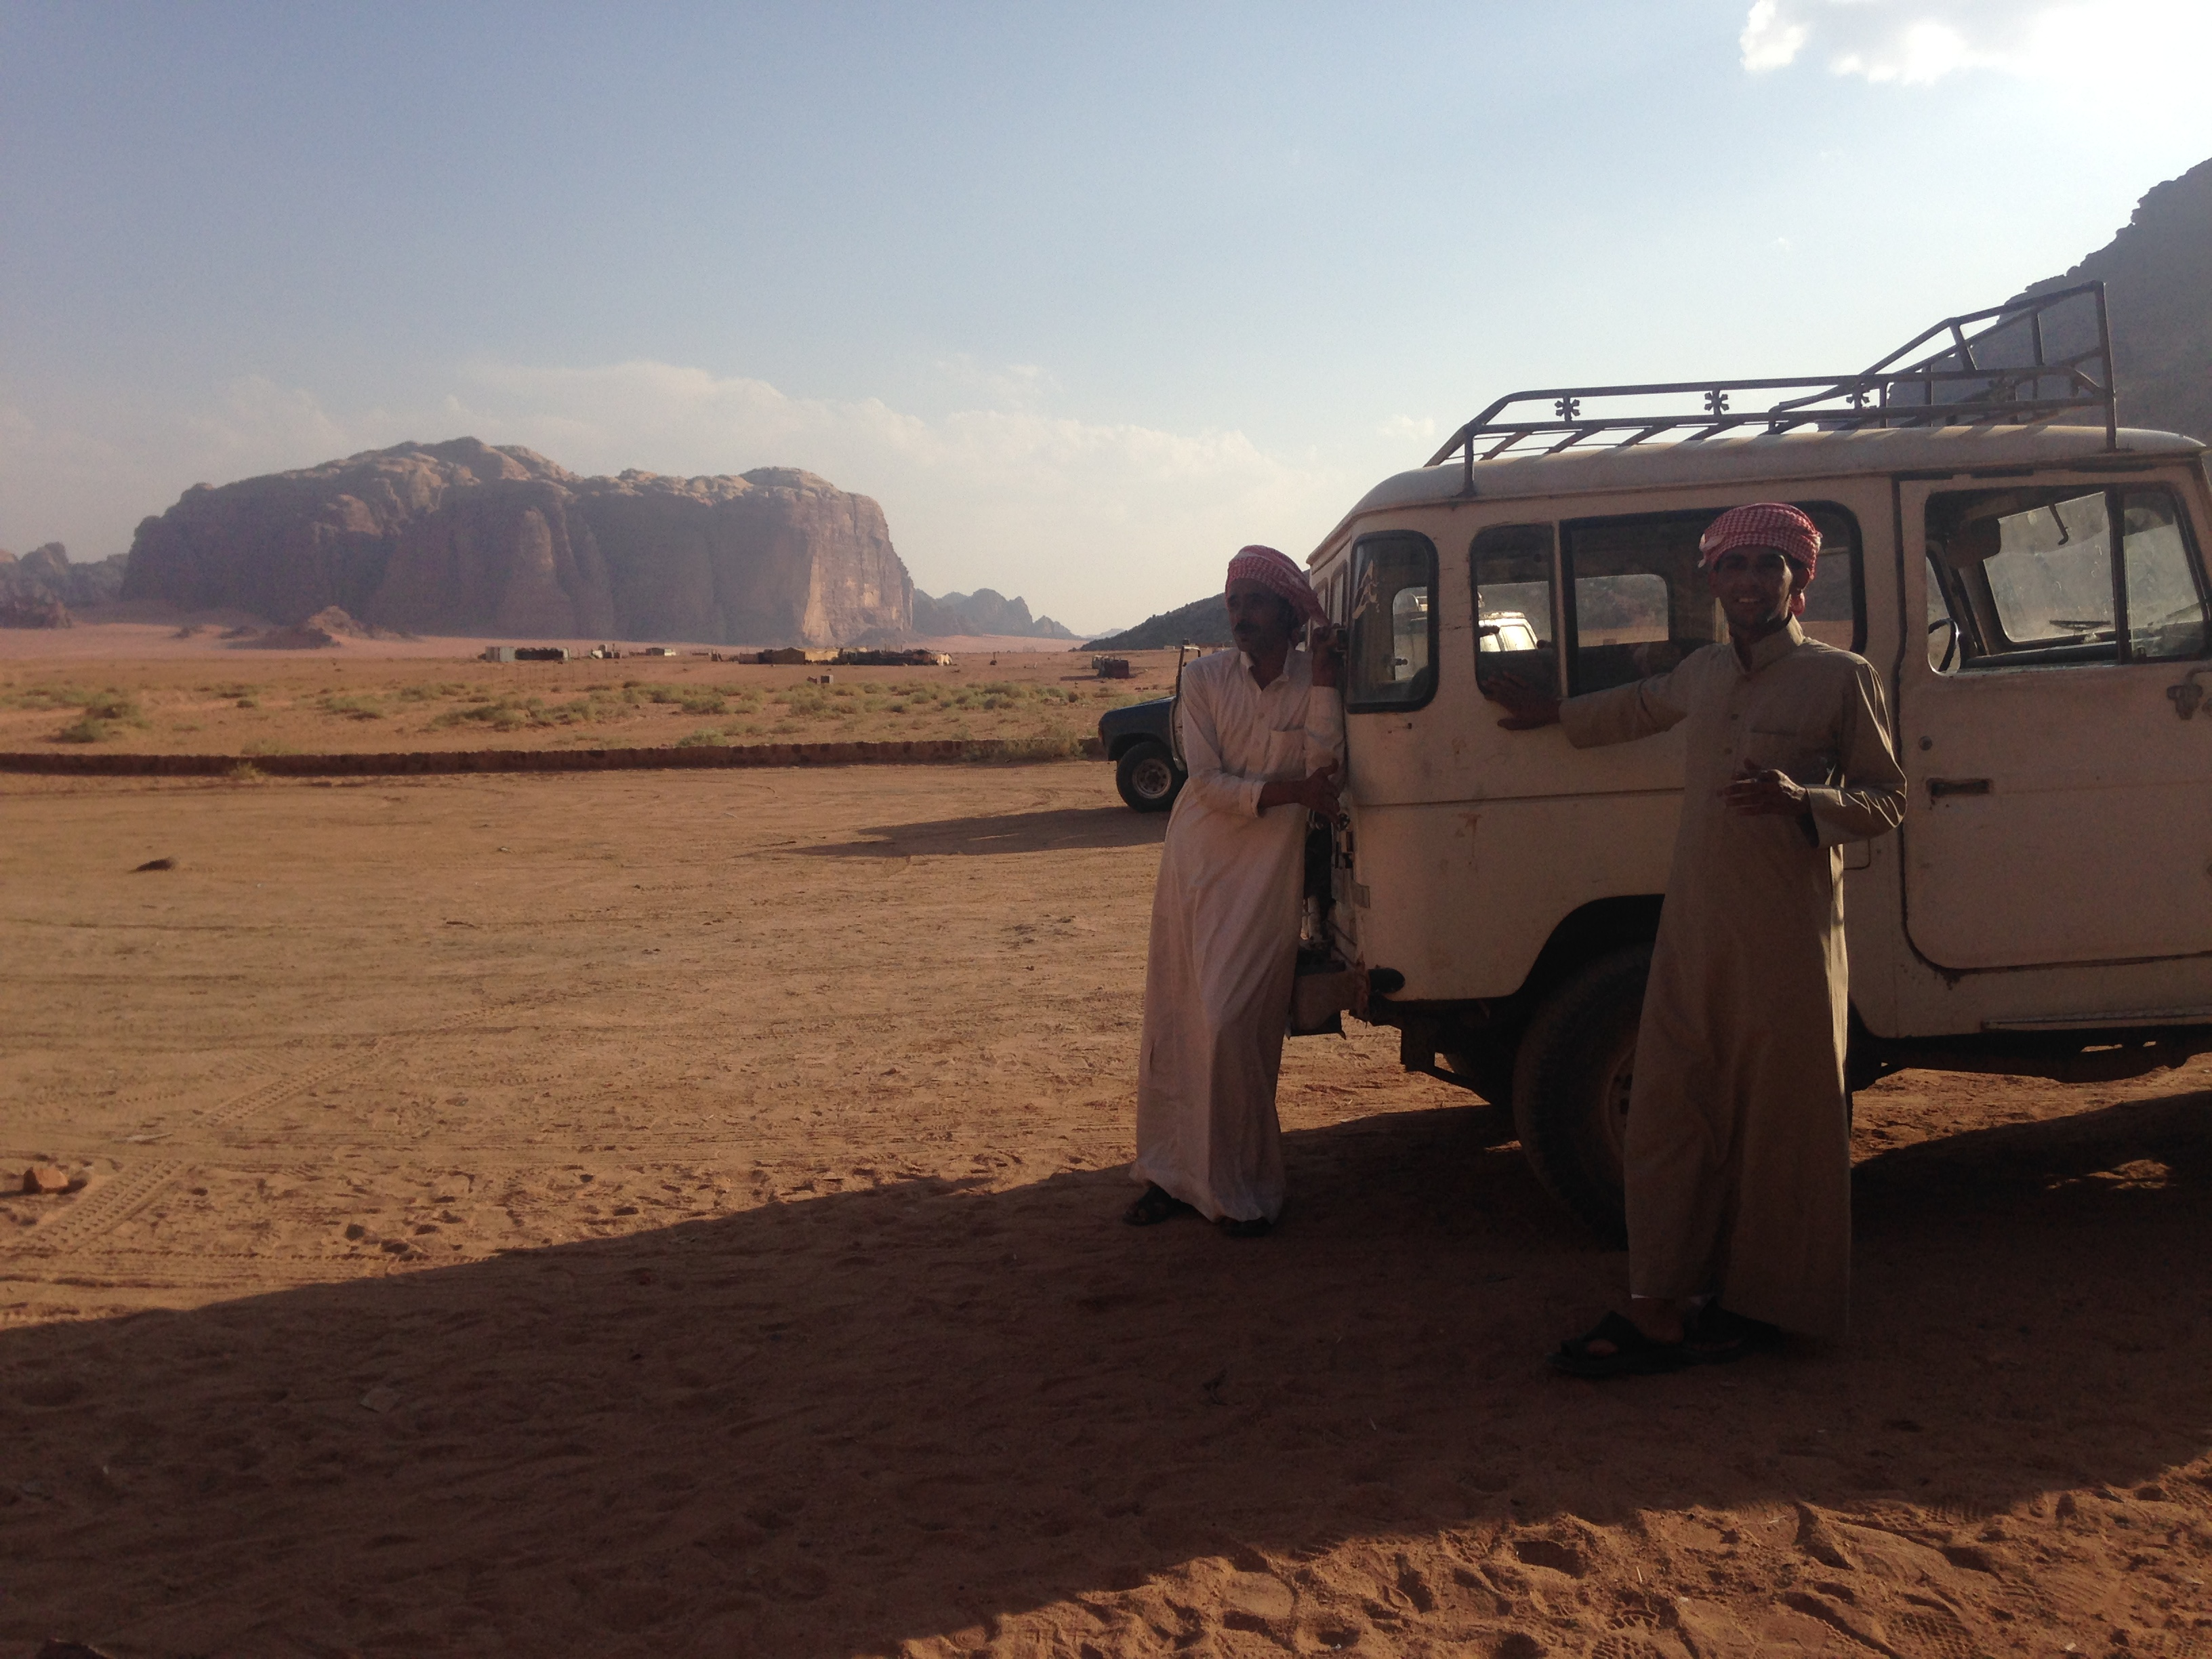 Two Bedouins wearing traditional Bedouin clothes in the Wadi Rum desert. Photo by Camilla Toftlund.